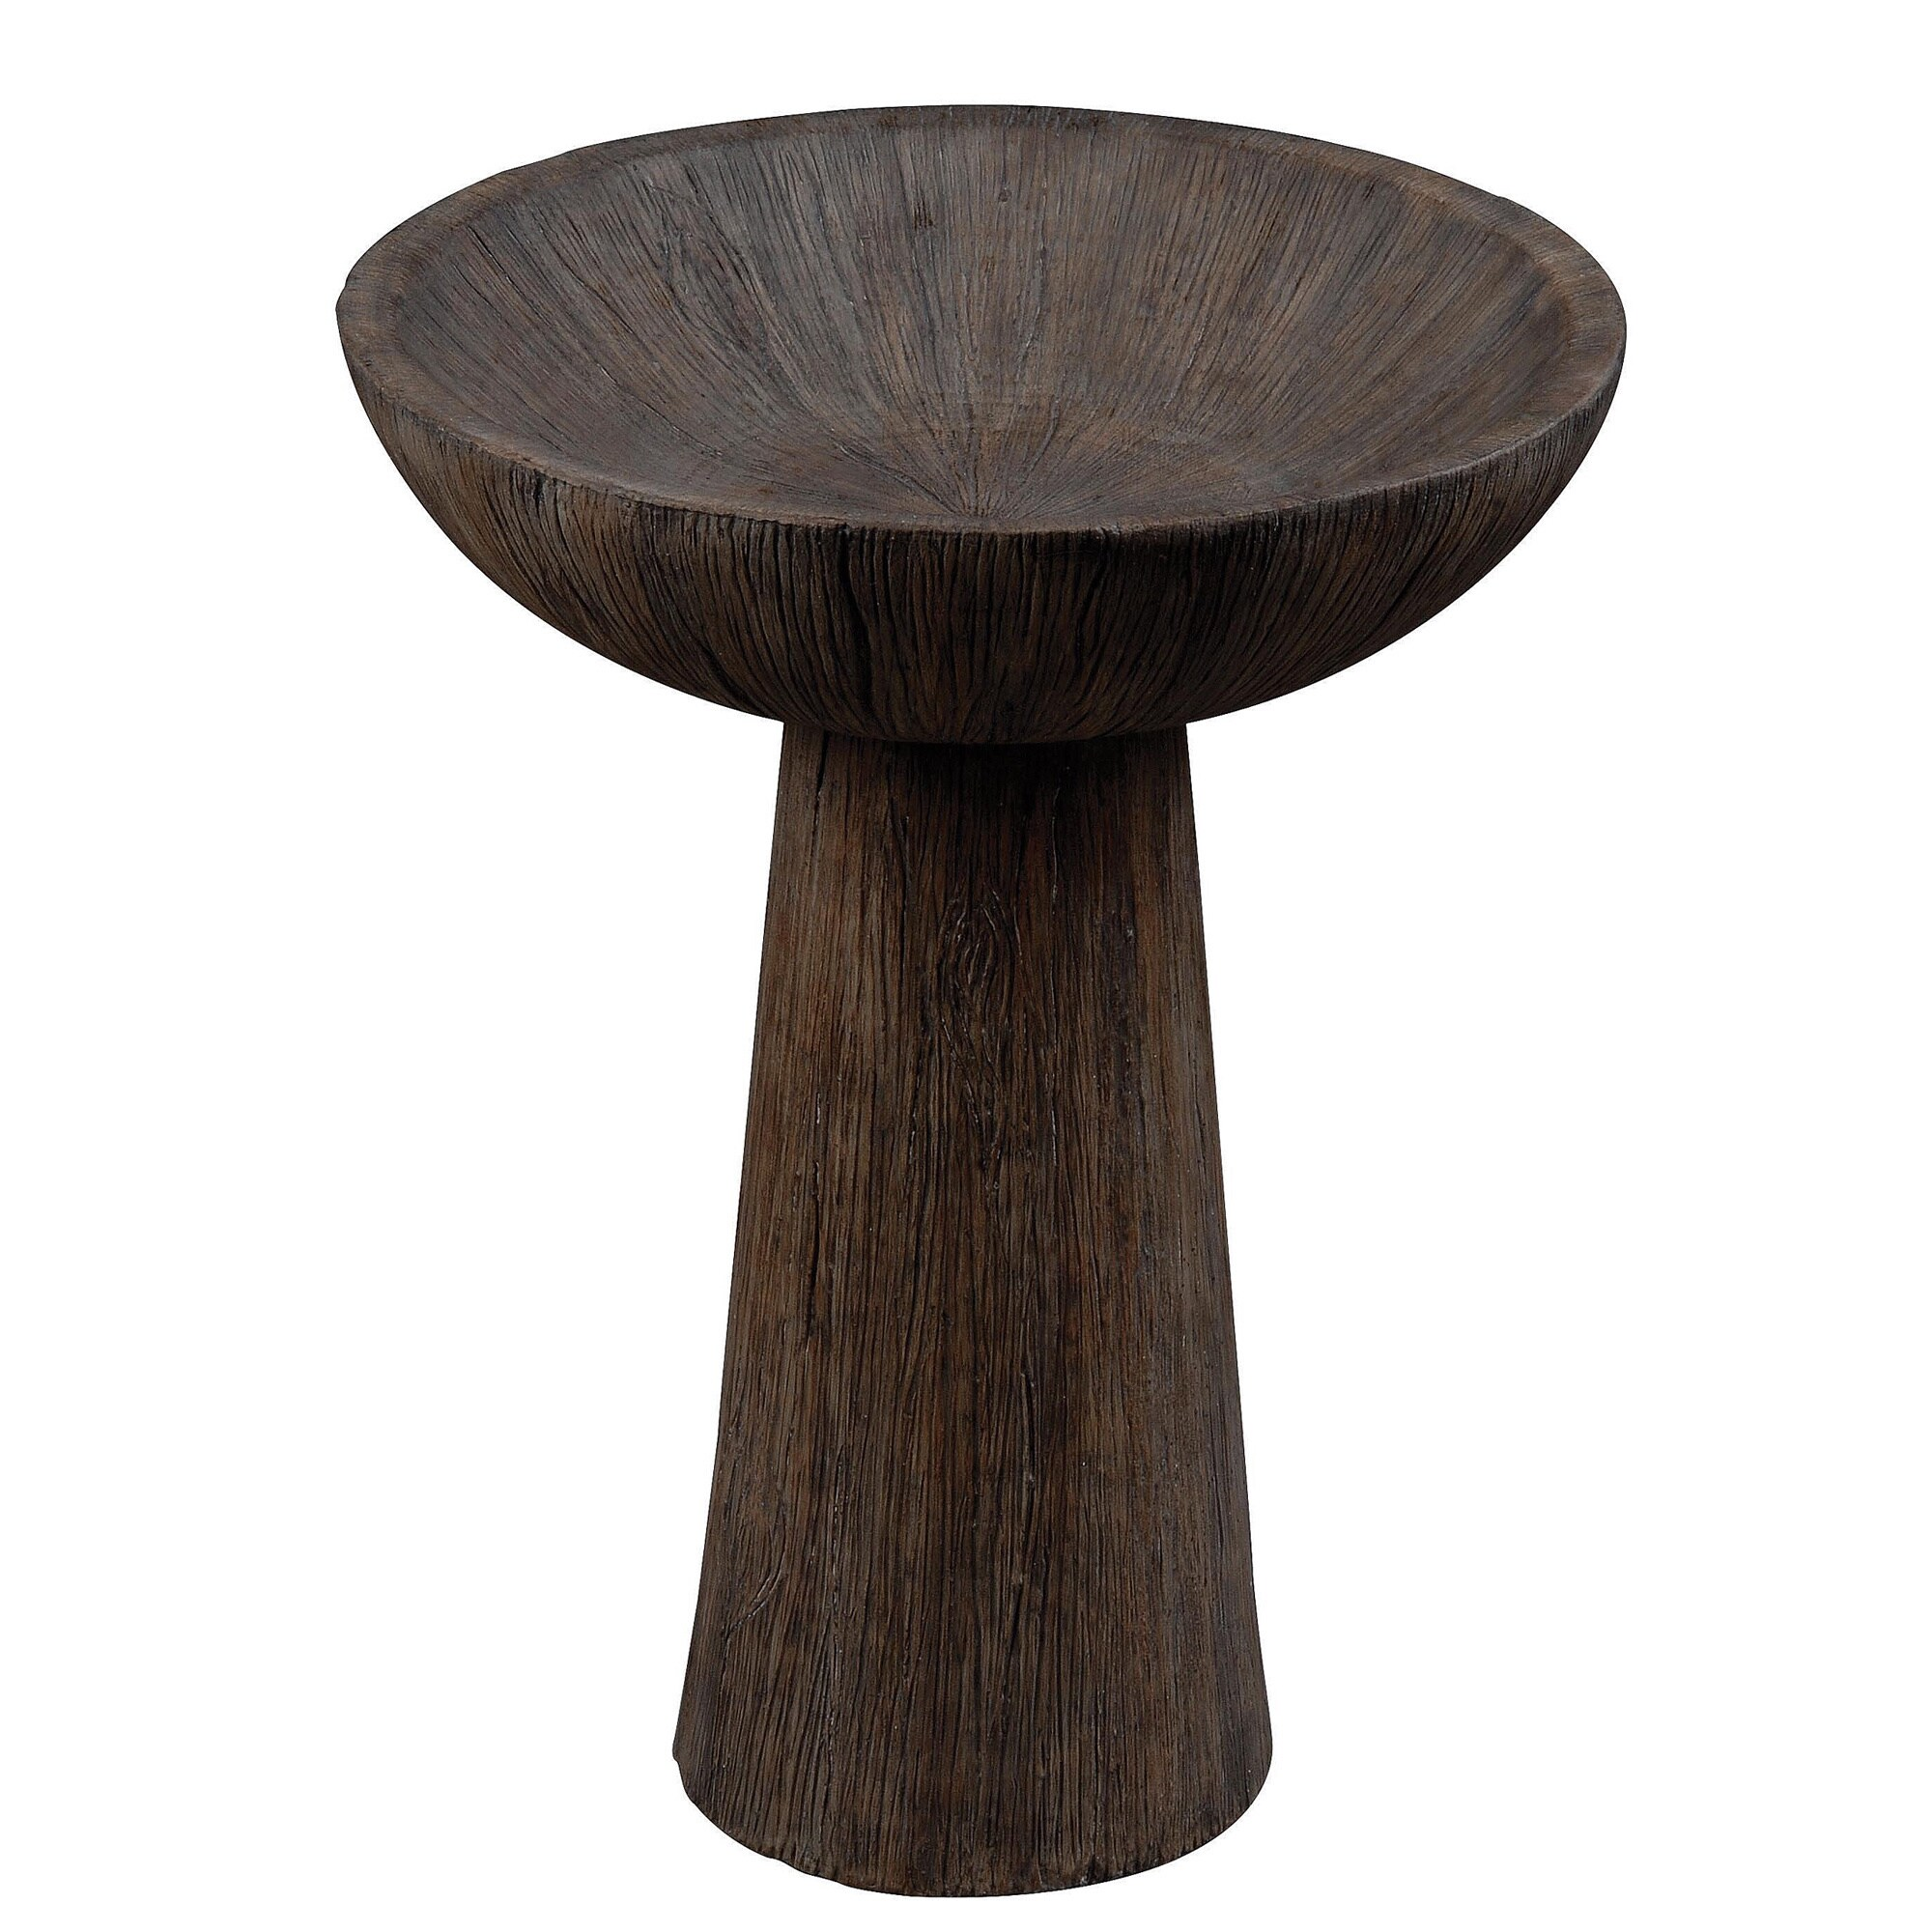 Design Craft Abigial 22 Inch High With Driftwood Finish O...